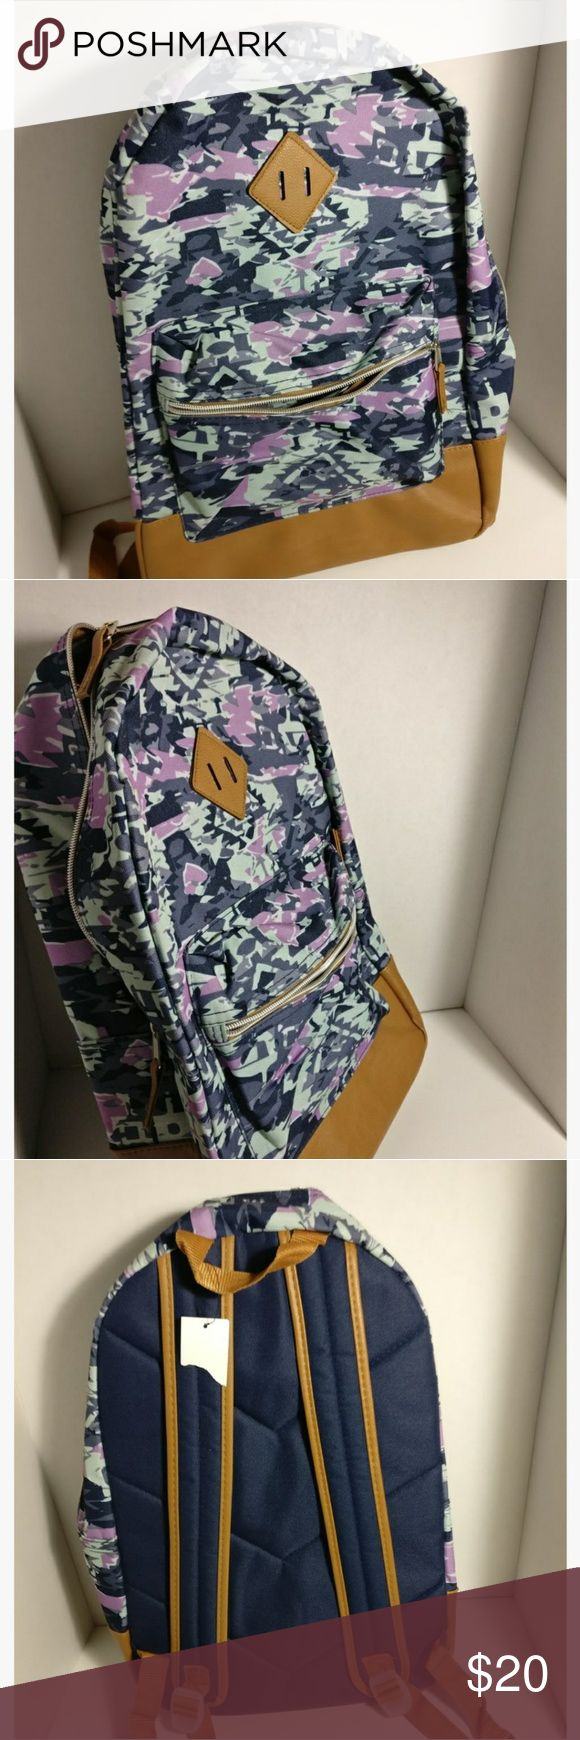 Herschel Style Camo Backpack *Camo print in Gray, Purple and Blue Mixed in * Leather bottom Accessories Bags